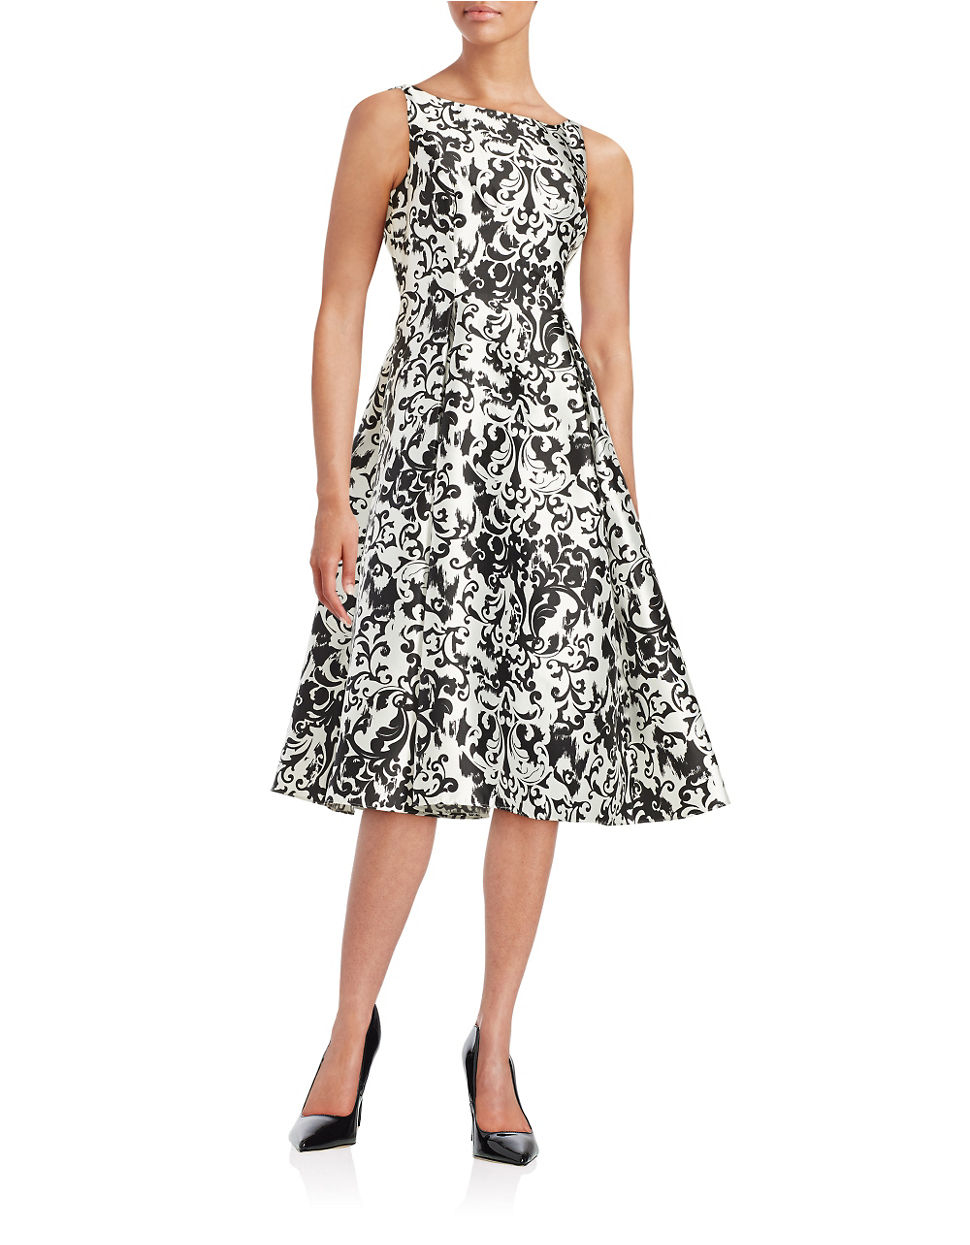 Lyst Adrianna Papell Damask Fit And Flare Dress In Black